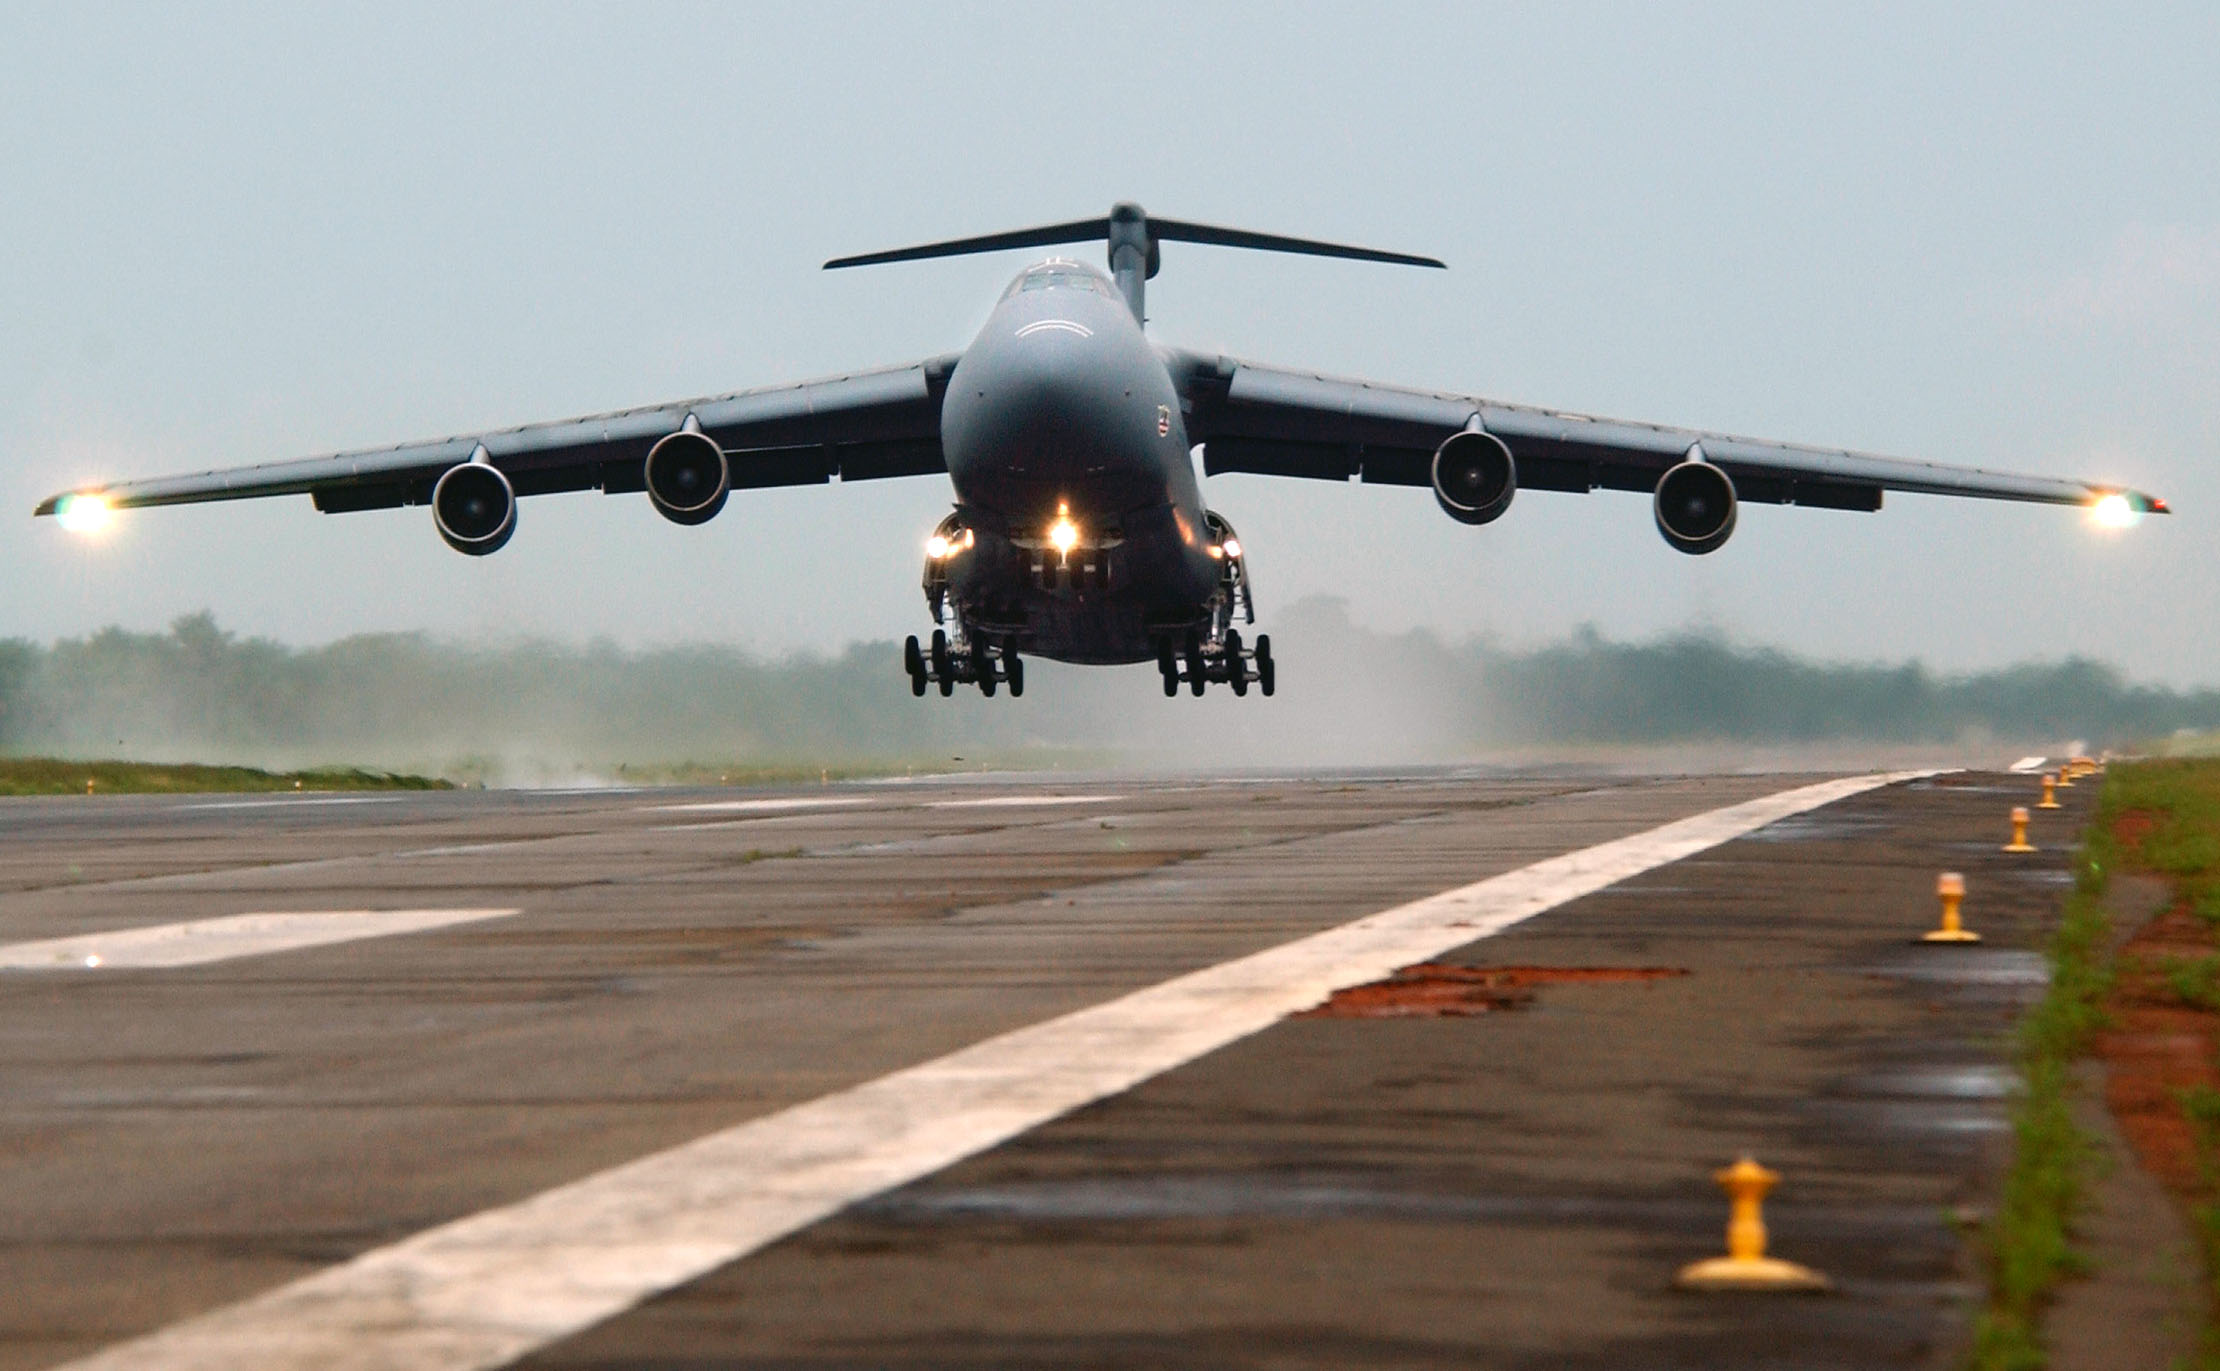 C-5 Galaxy (U.S. Air Force photo by Tech. Sgt. Justin D. Pyle)